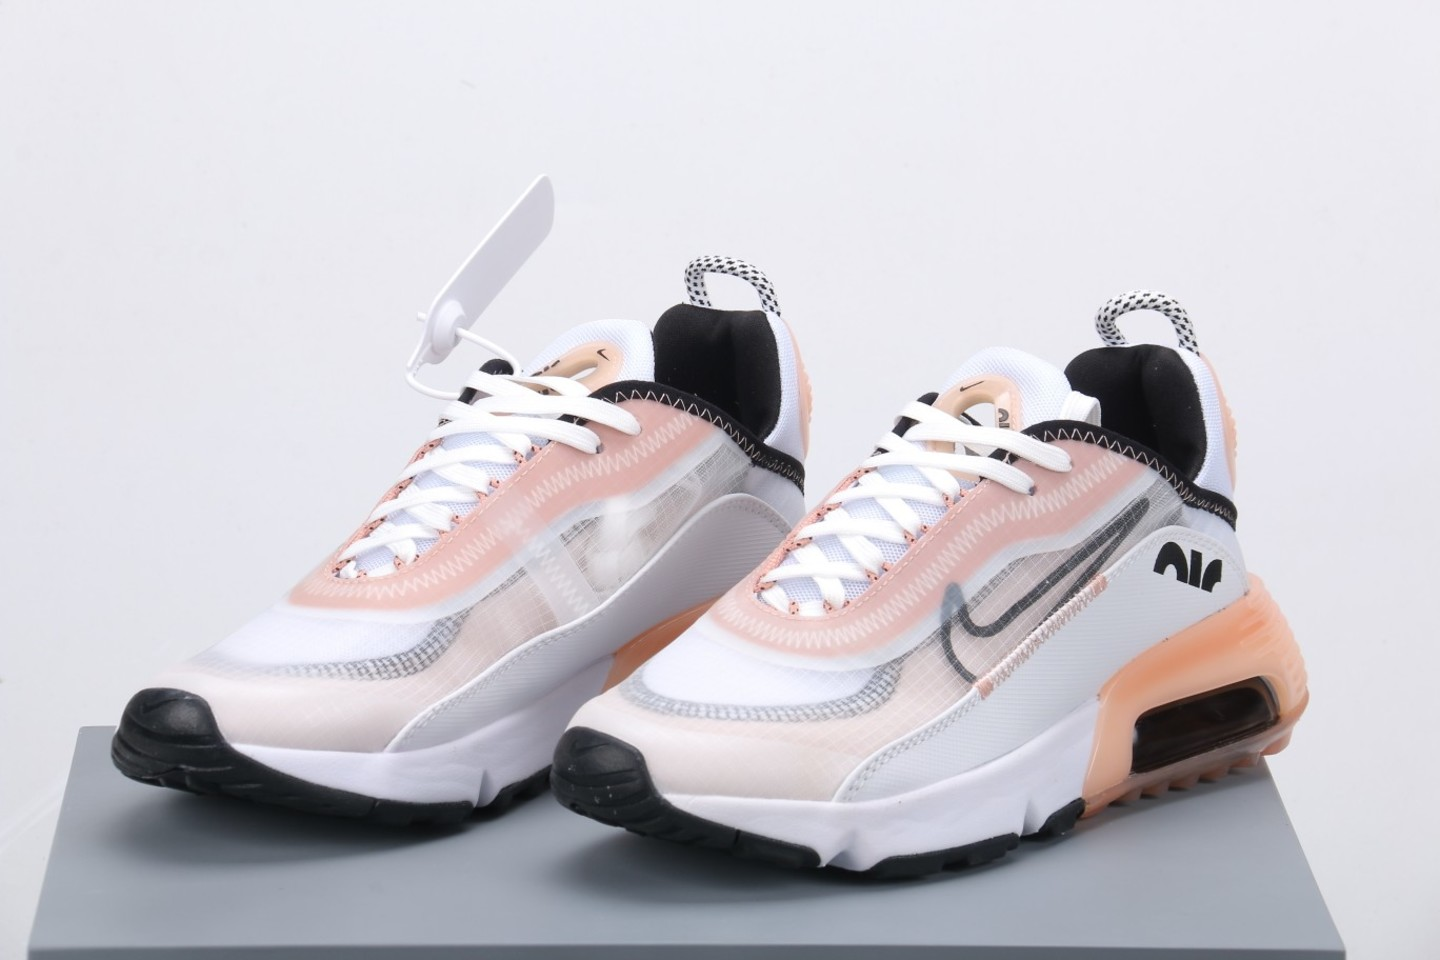 New ike Air Max 2090 Summit White Champagne Football Grey Black CV8727-100 overall